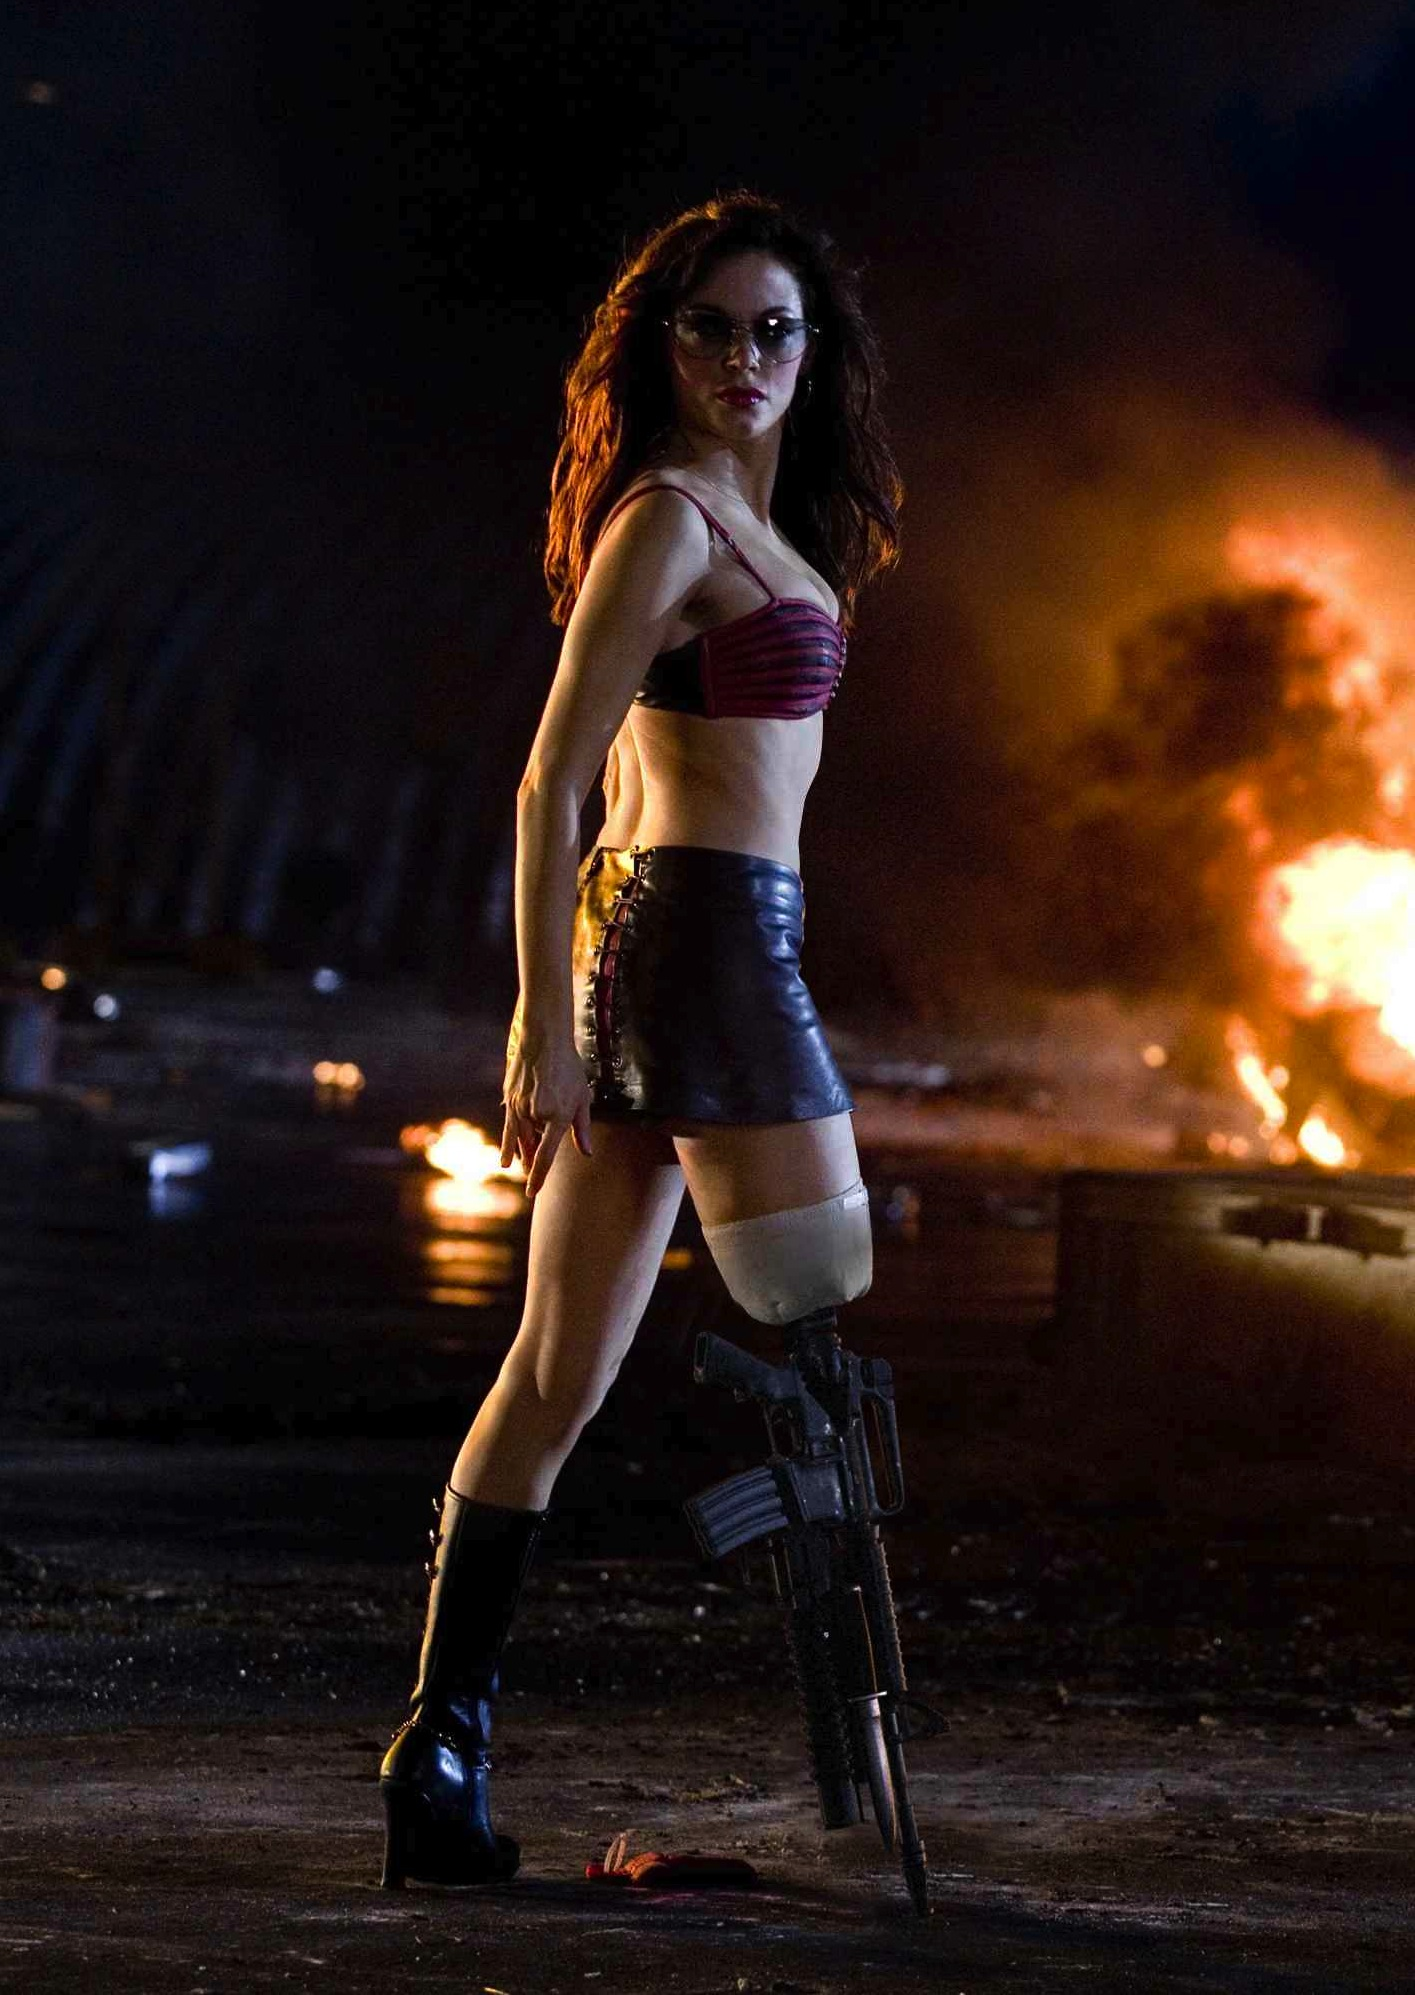 Rose mcgowan grindhouse planet terror compilation - 4 4